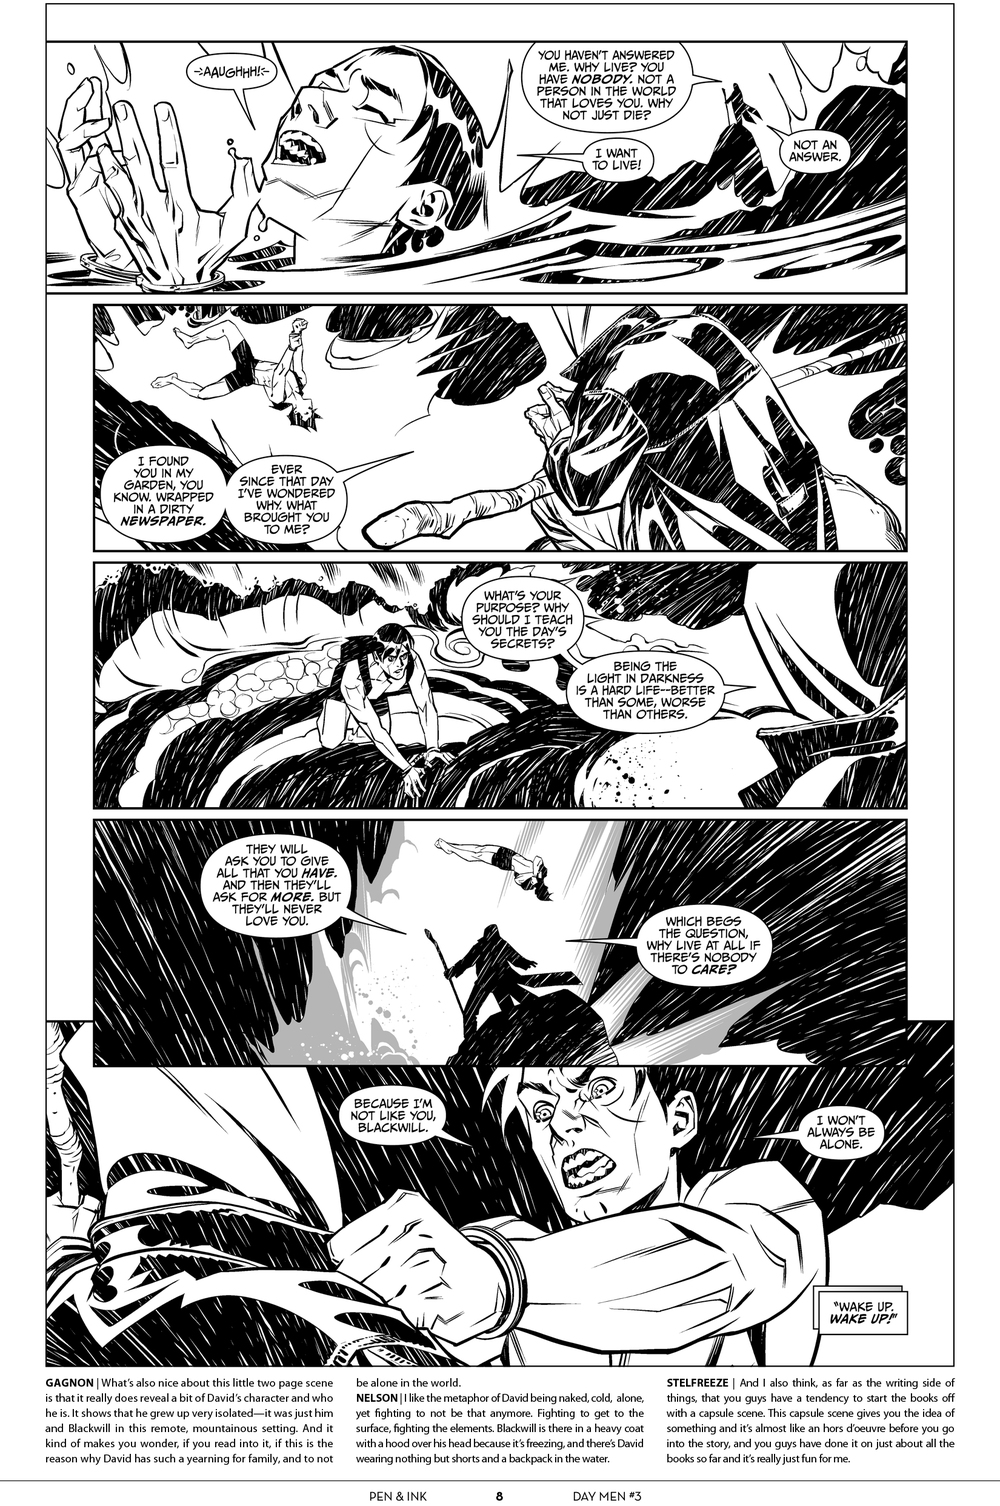 BOOM_Pen_and_Ink_Day_Men_002_PRESS-8.jpg